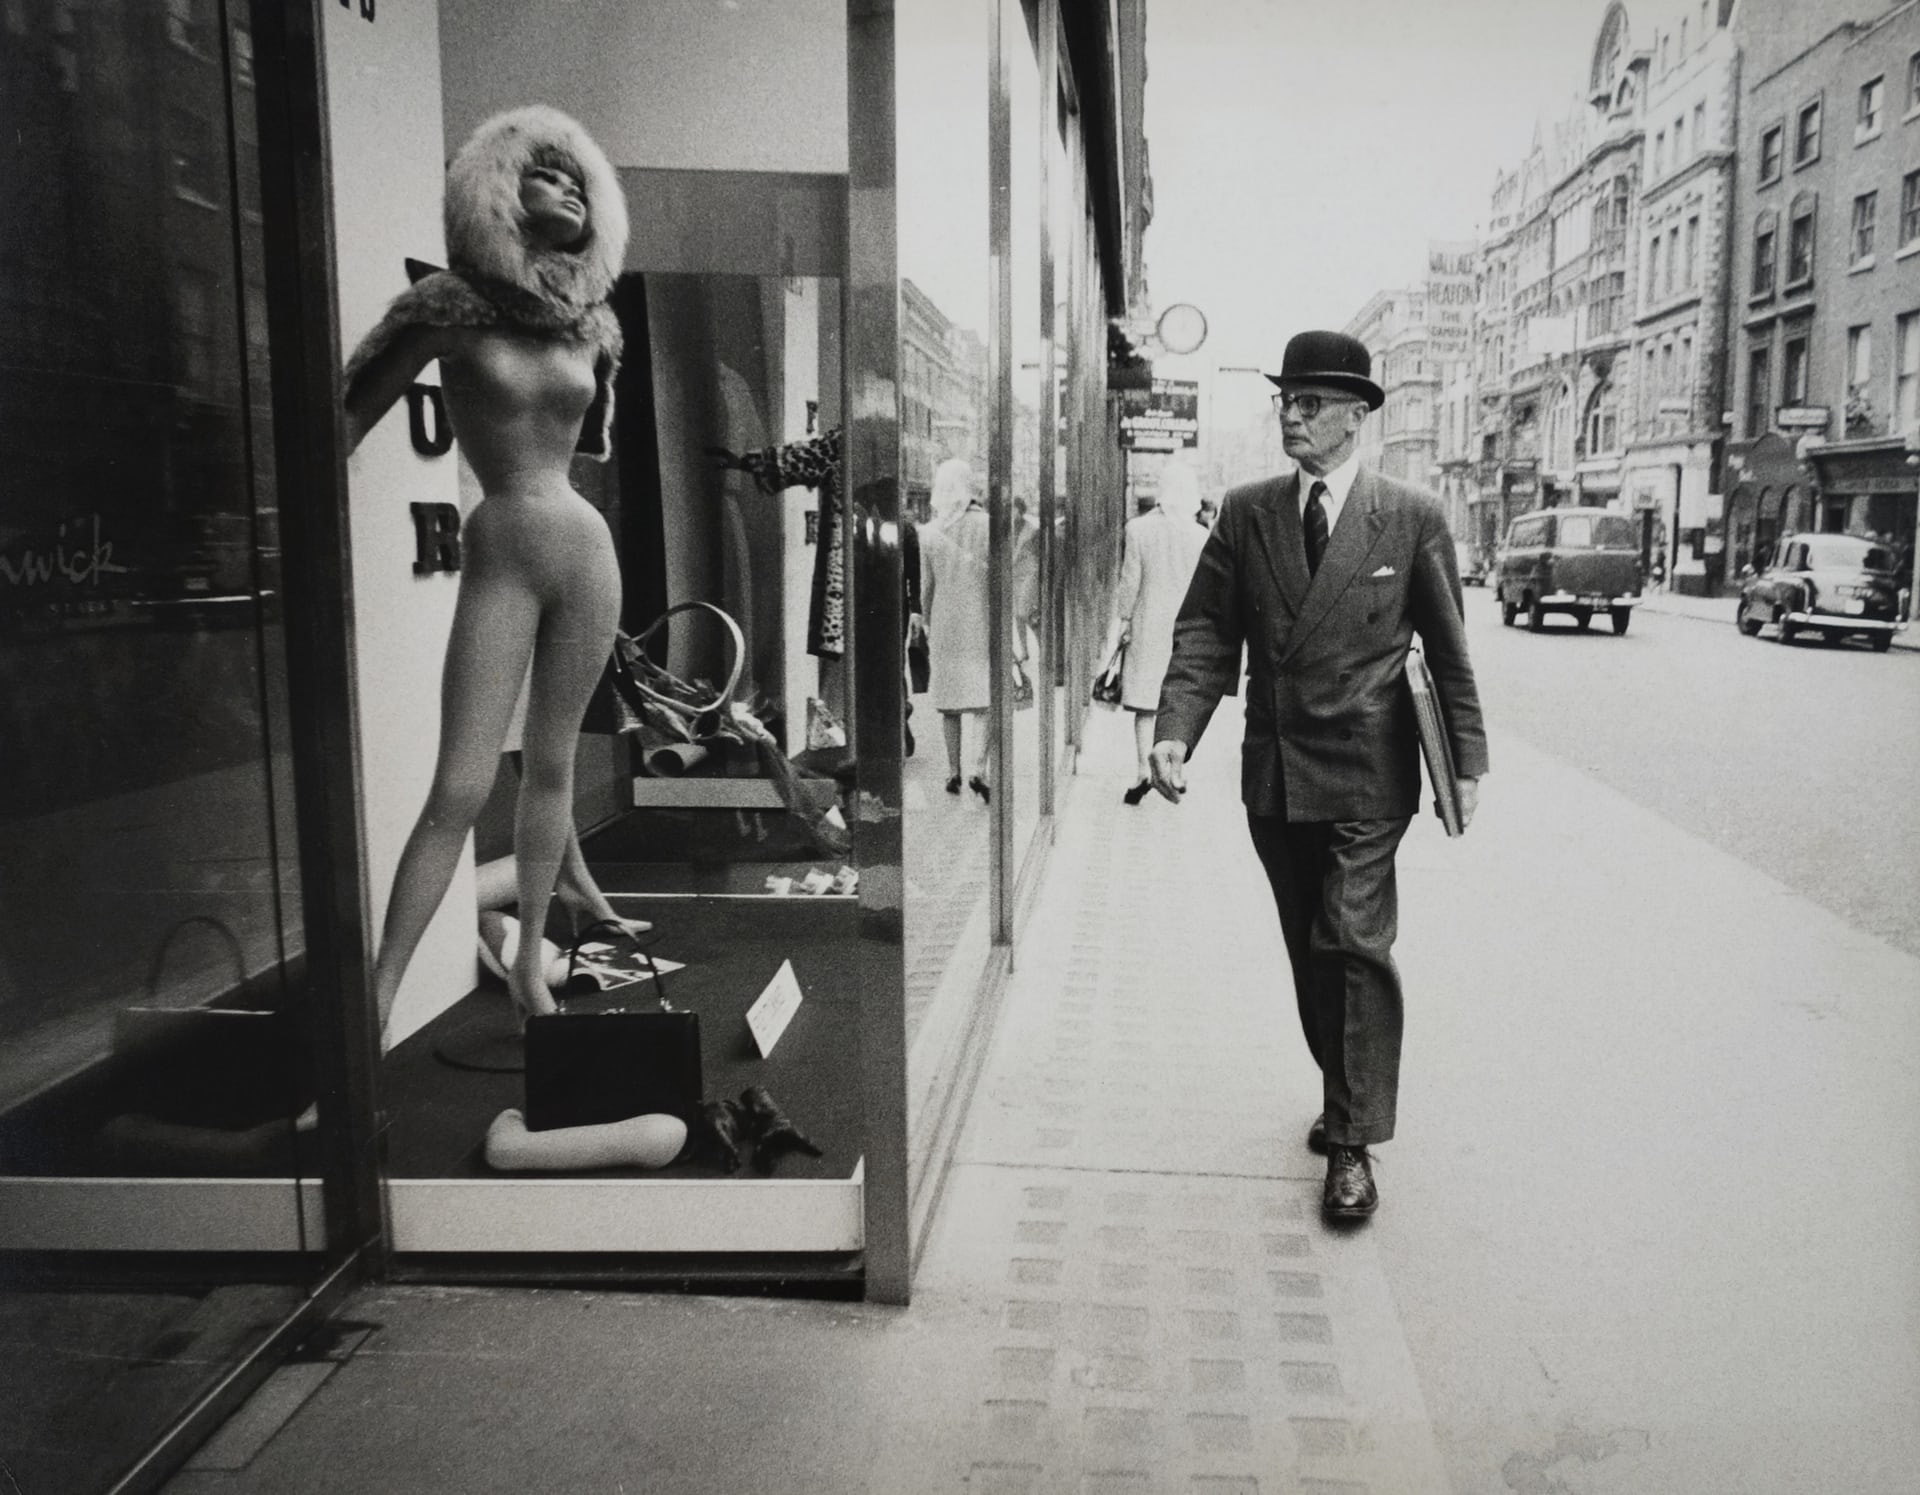 New Bond Street, London, 1964